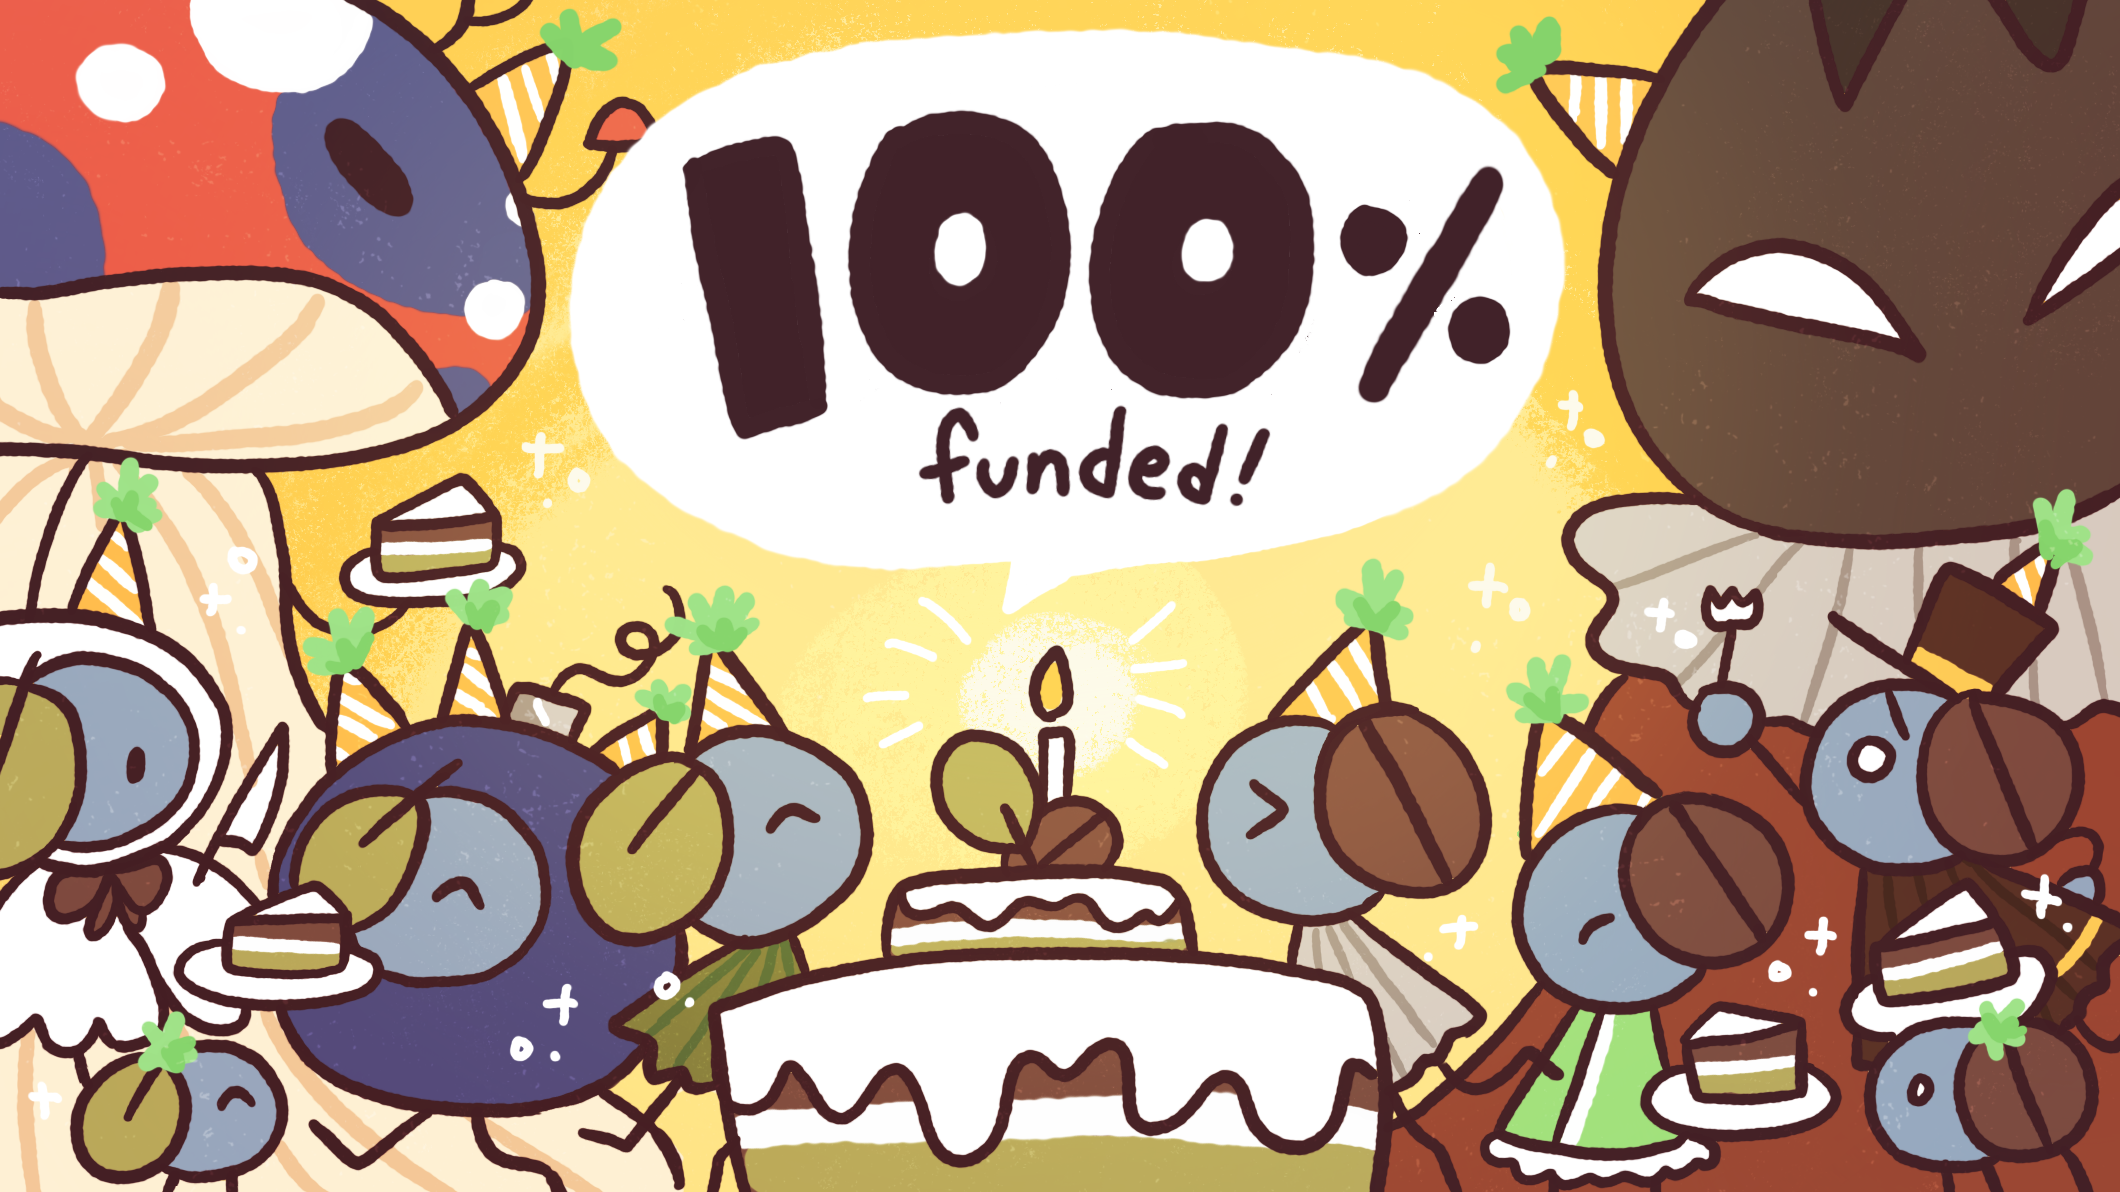 100% Funded